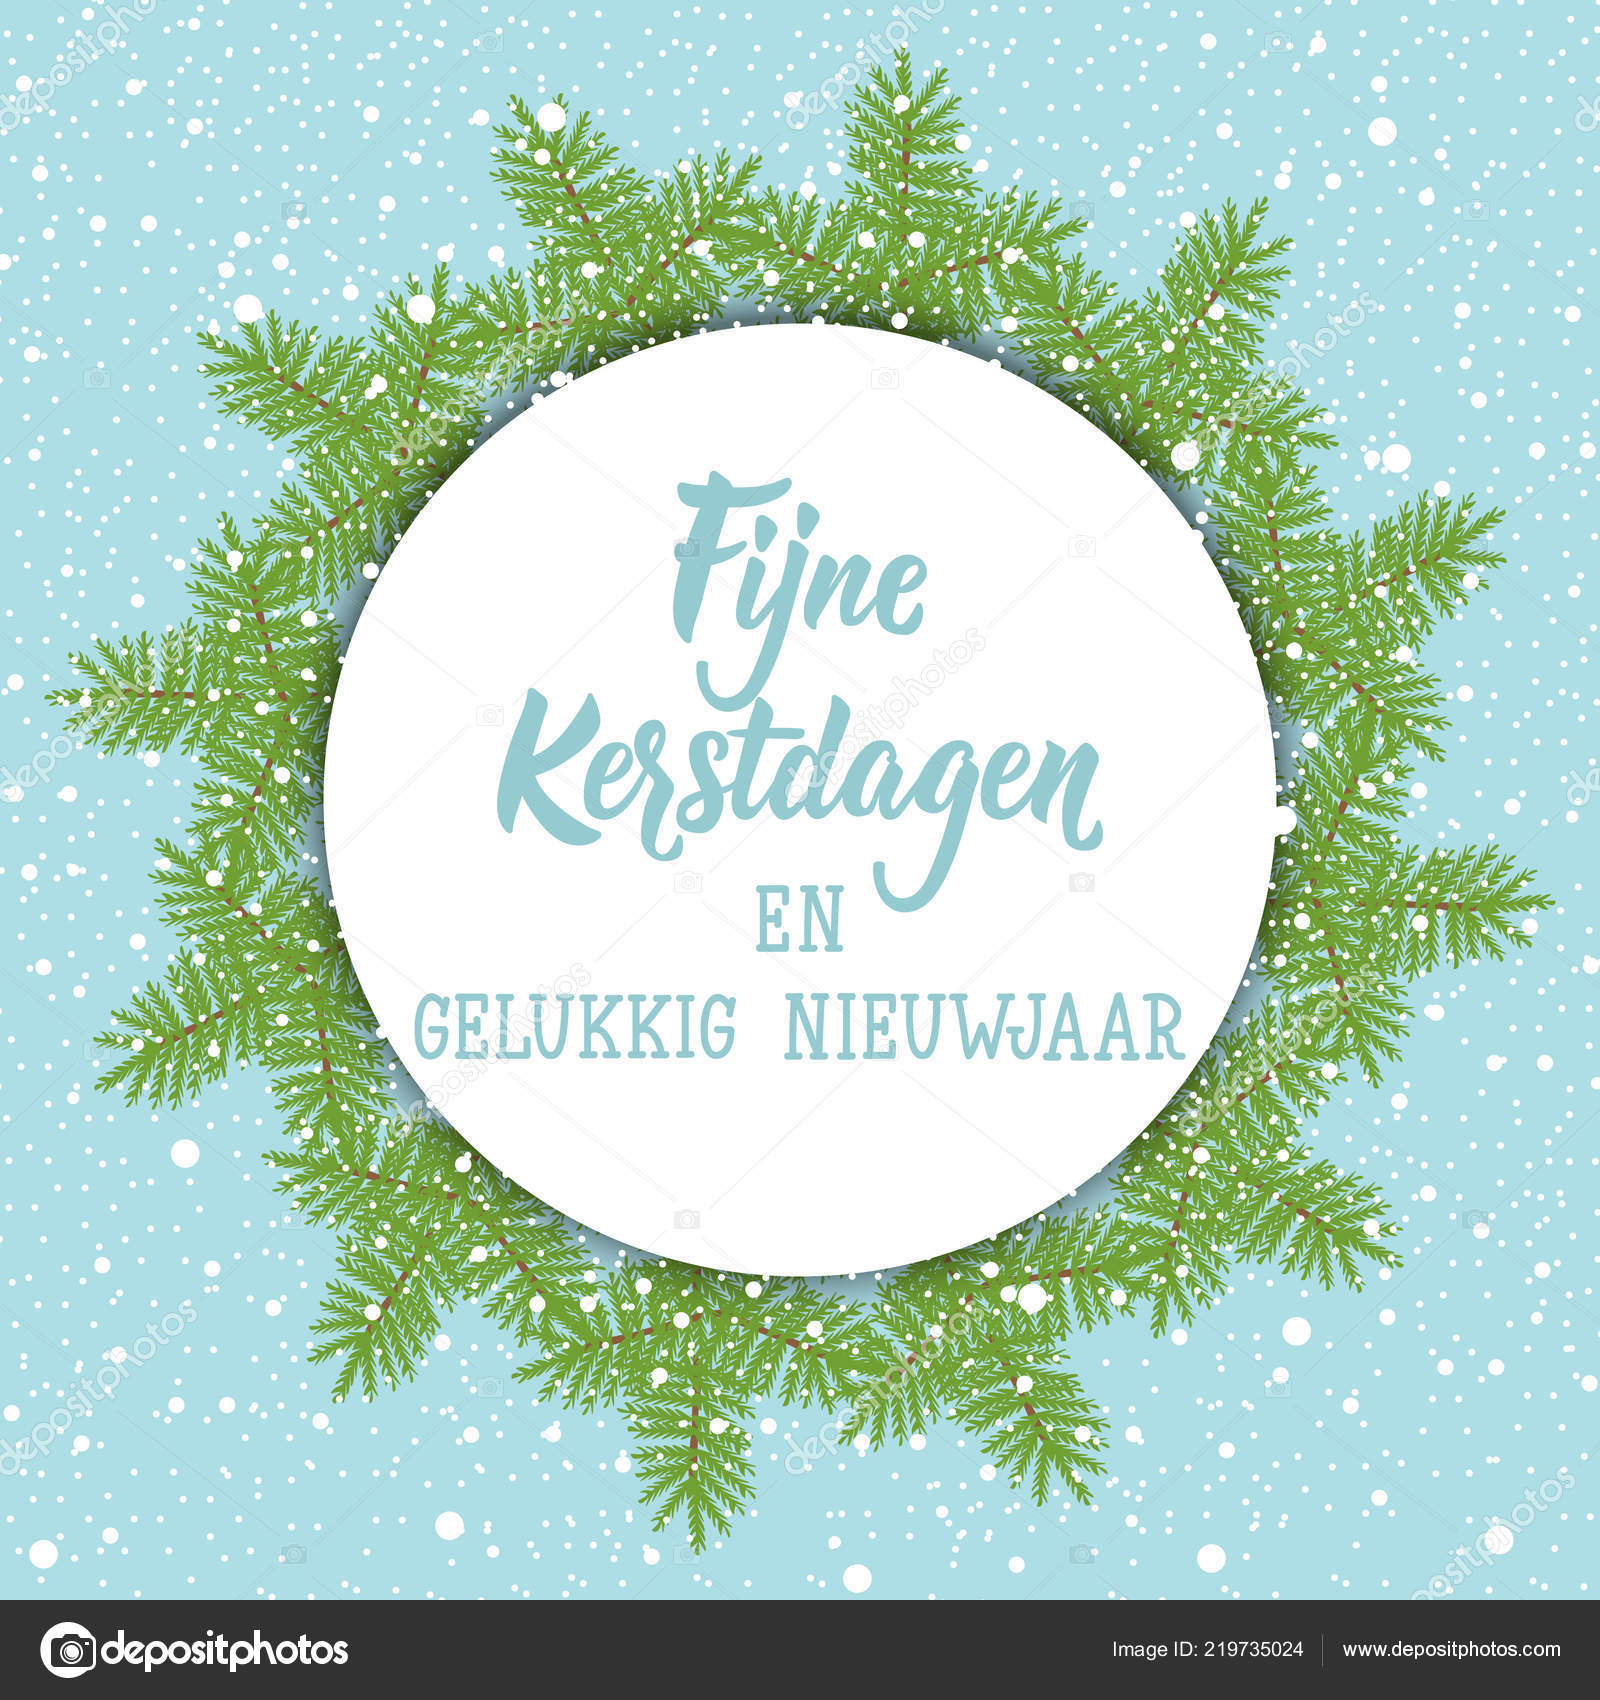 Merry Christmas In Dutch.Christmas Banner Dutch Text Merry Christmas Happy New Year